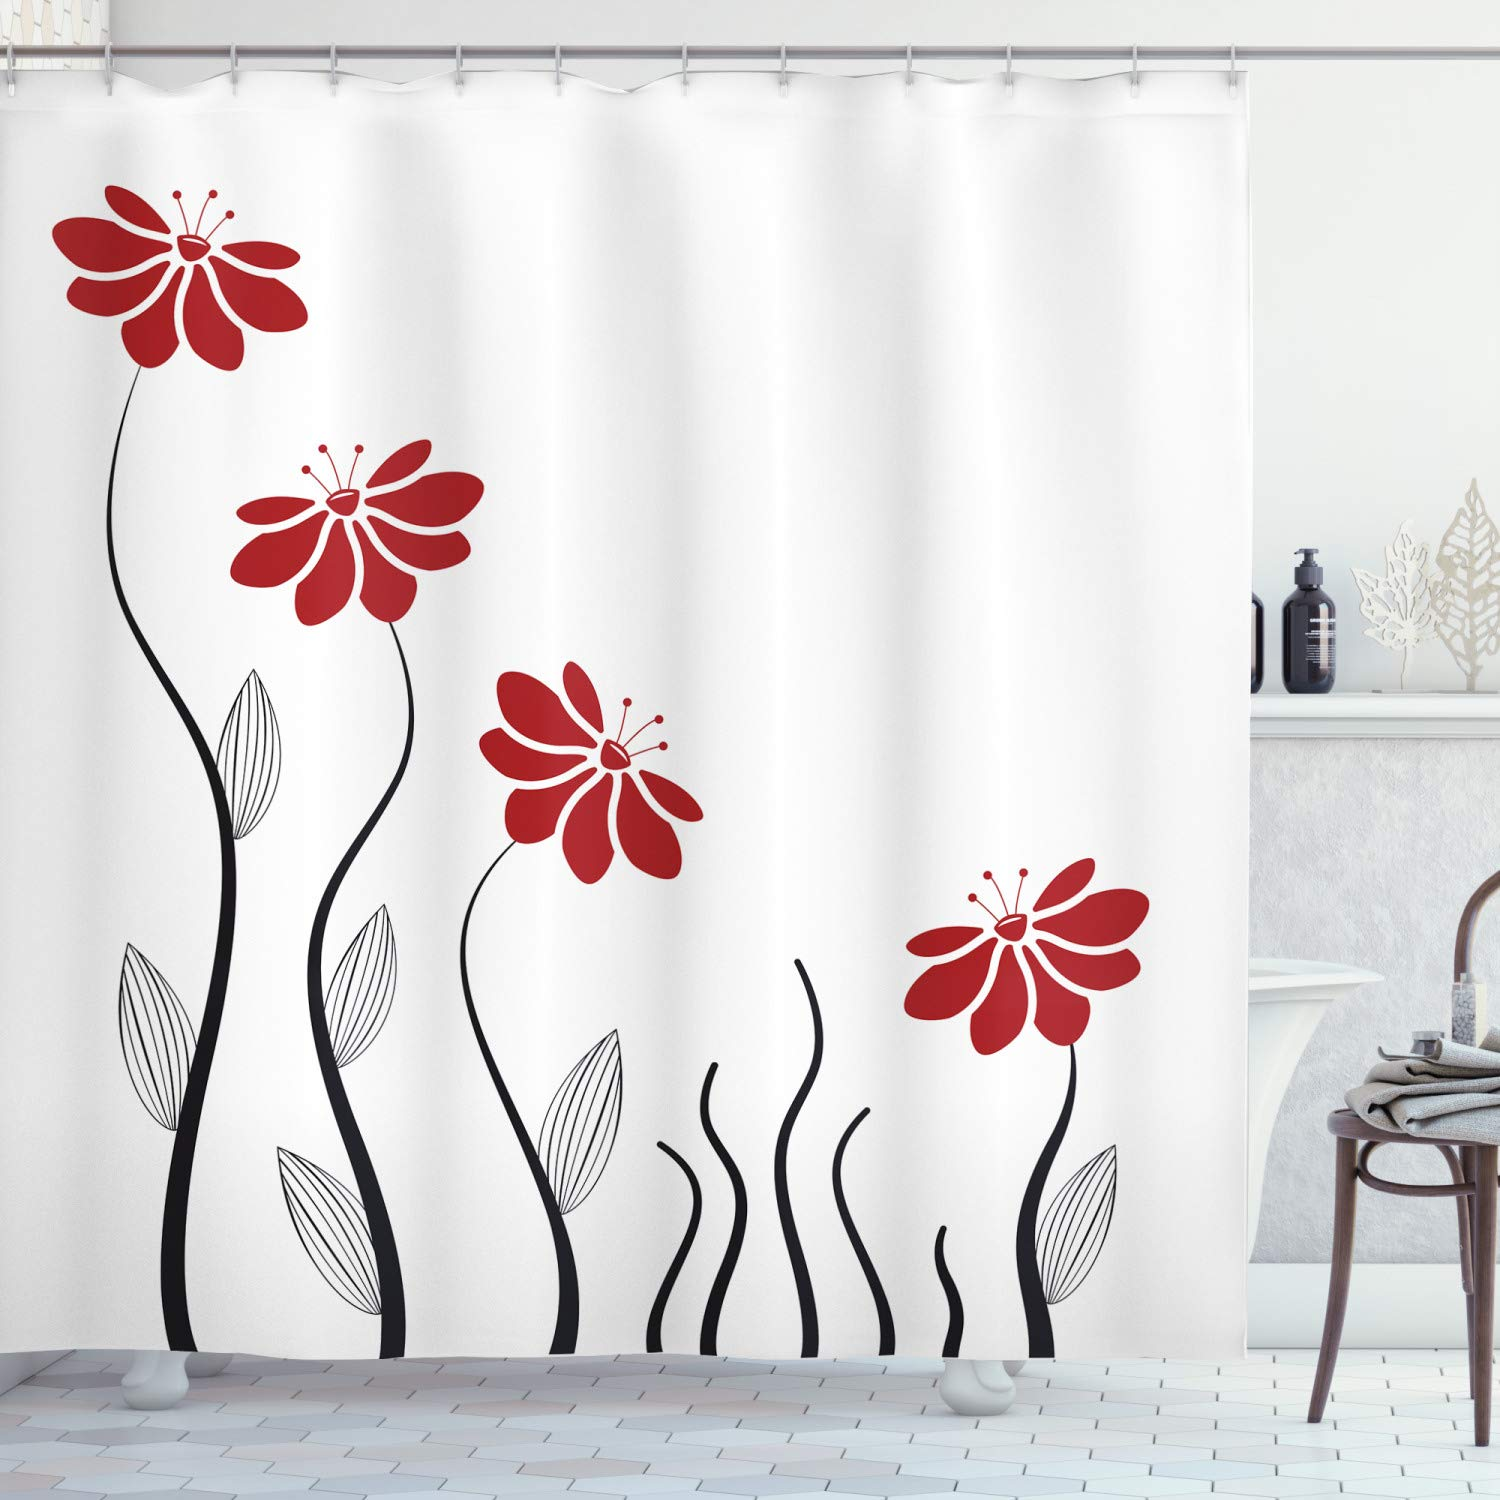 Dragonfly Shower Curtain Royal Rose Petals Print for Bathroom